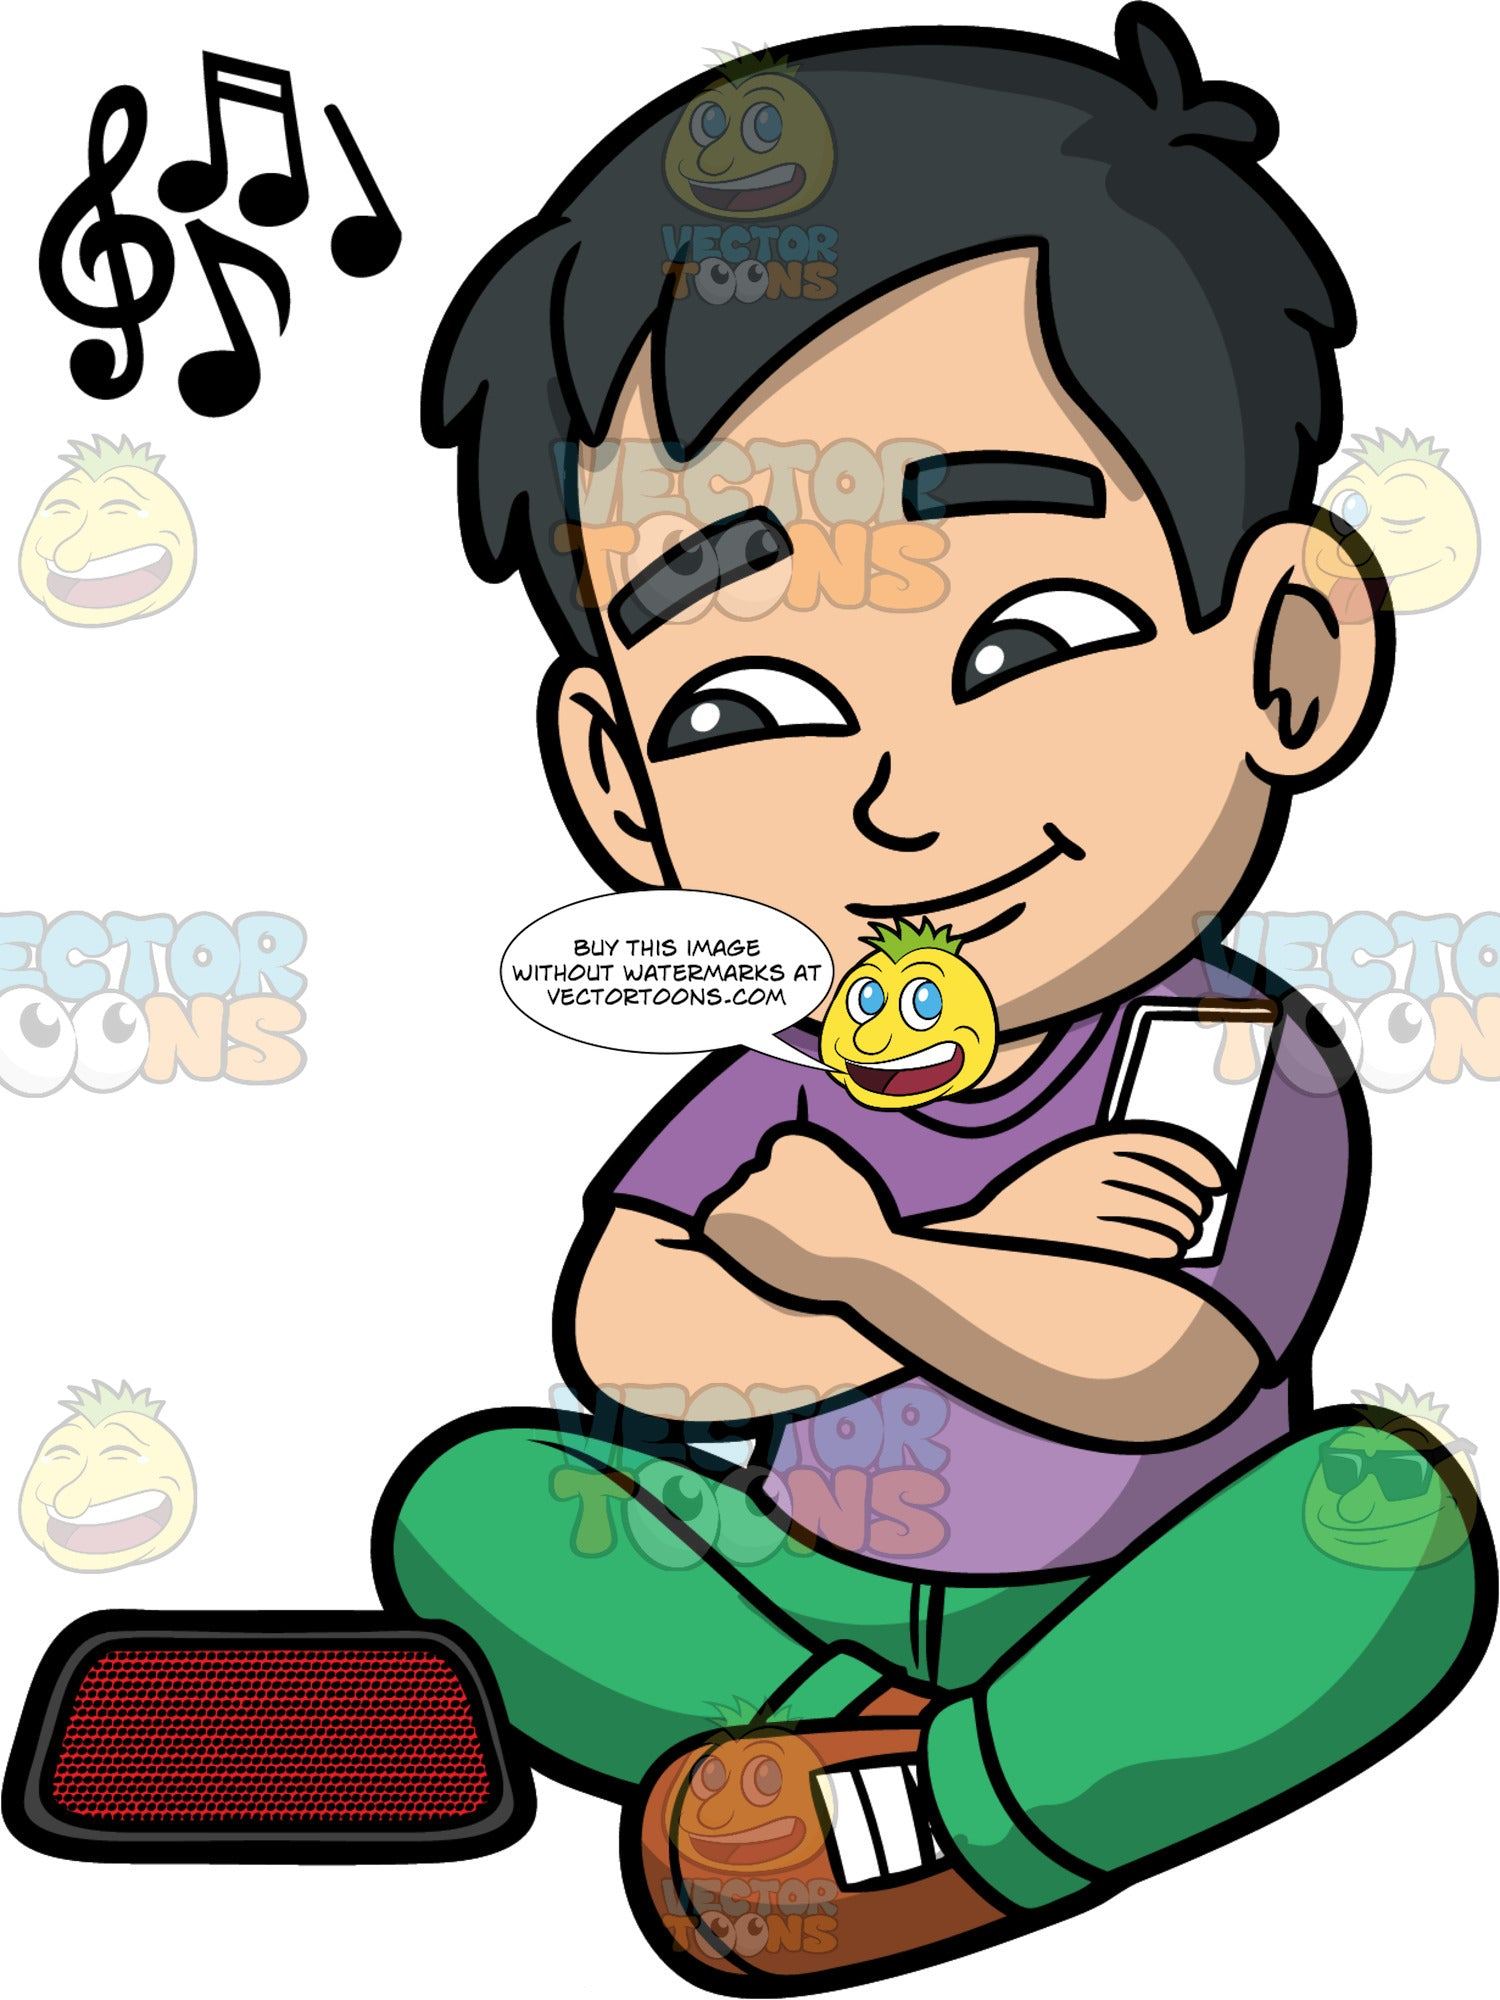 Young Kevin Listening To Music. An Asian boy wearing green pants, a purple shirt, and brown shoes, sitting down and listening to music on a blue tooth speaker